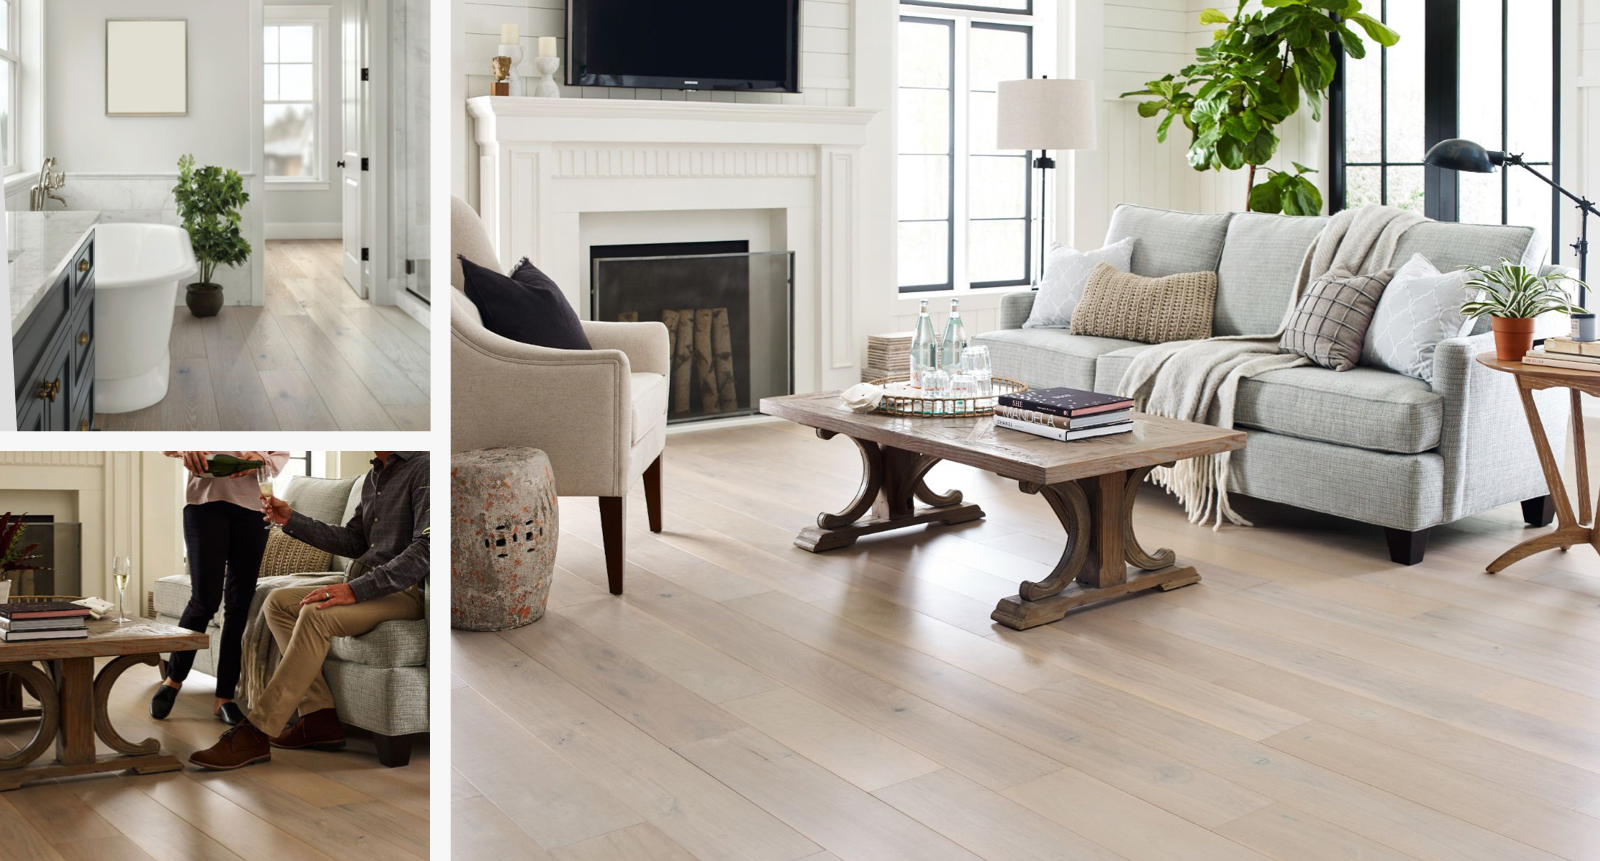 Floorte waterproof hardwood flooring for your home | Boyles Flooring